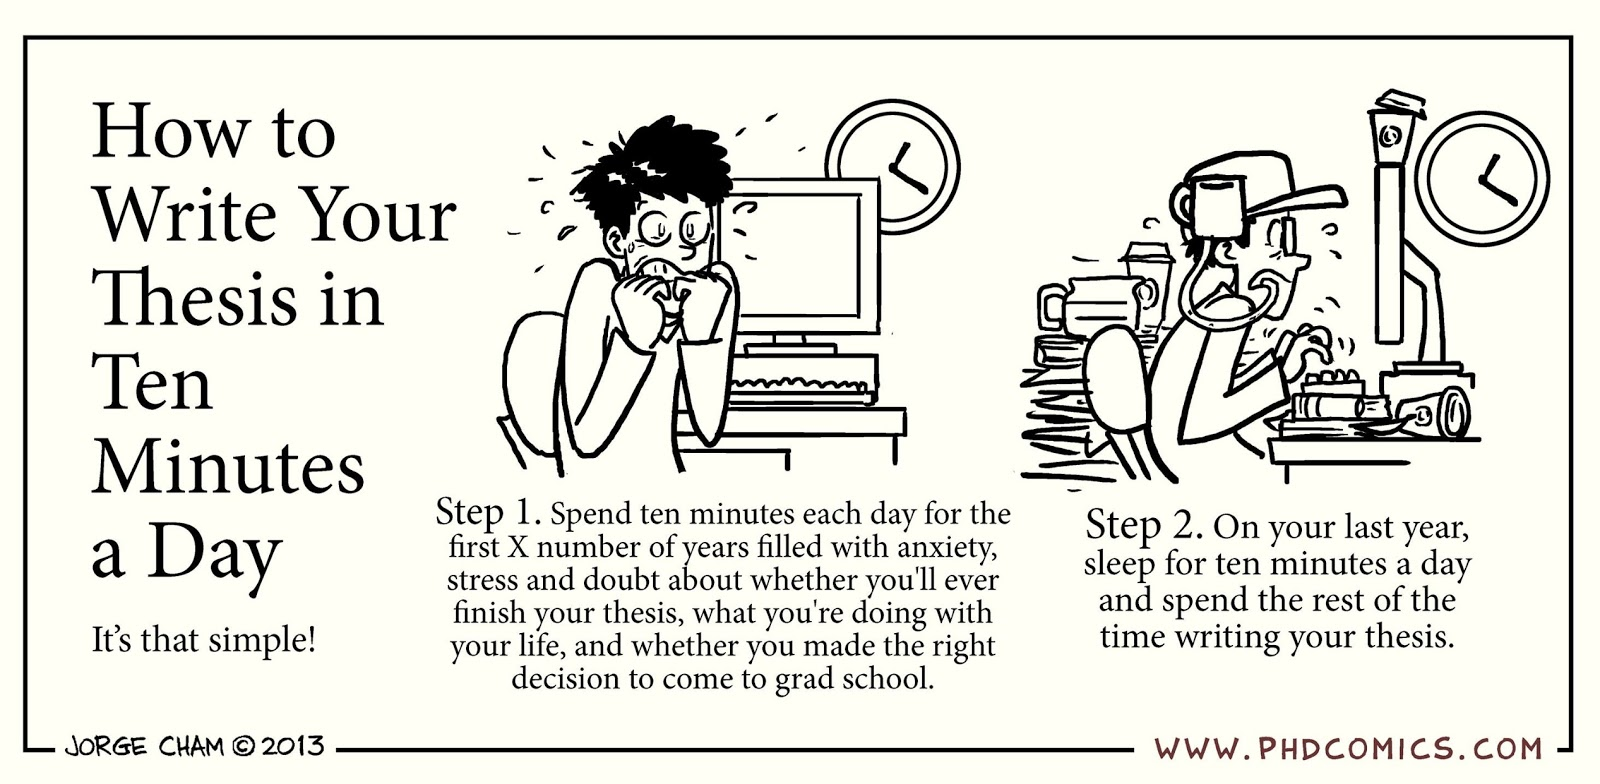 writing masters thesis tips Writing an overview of your project is designed not only to formally announce your intentions as far as your master's thesis goes, but also to help you become more fluent in and informed about the topic for your project 7-8 double-spaced pages should probably be enough.